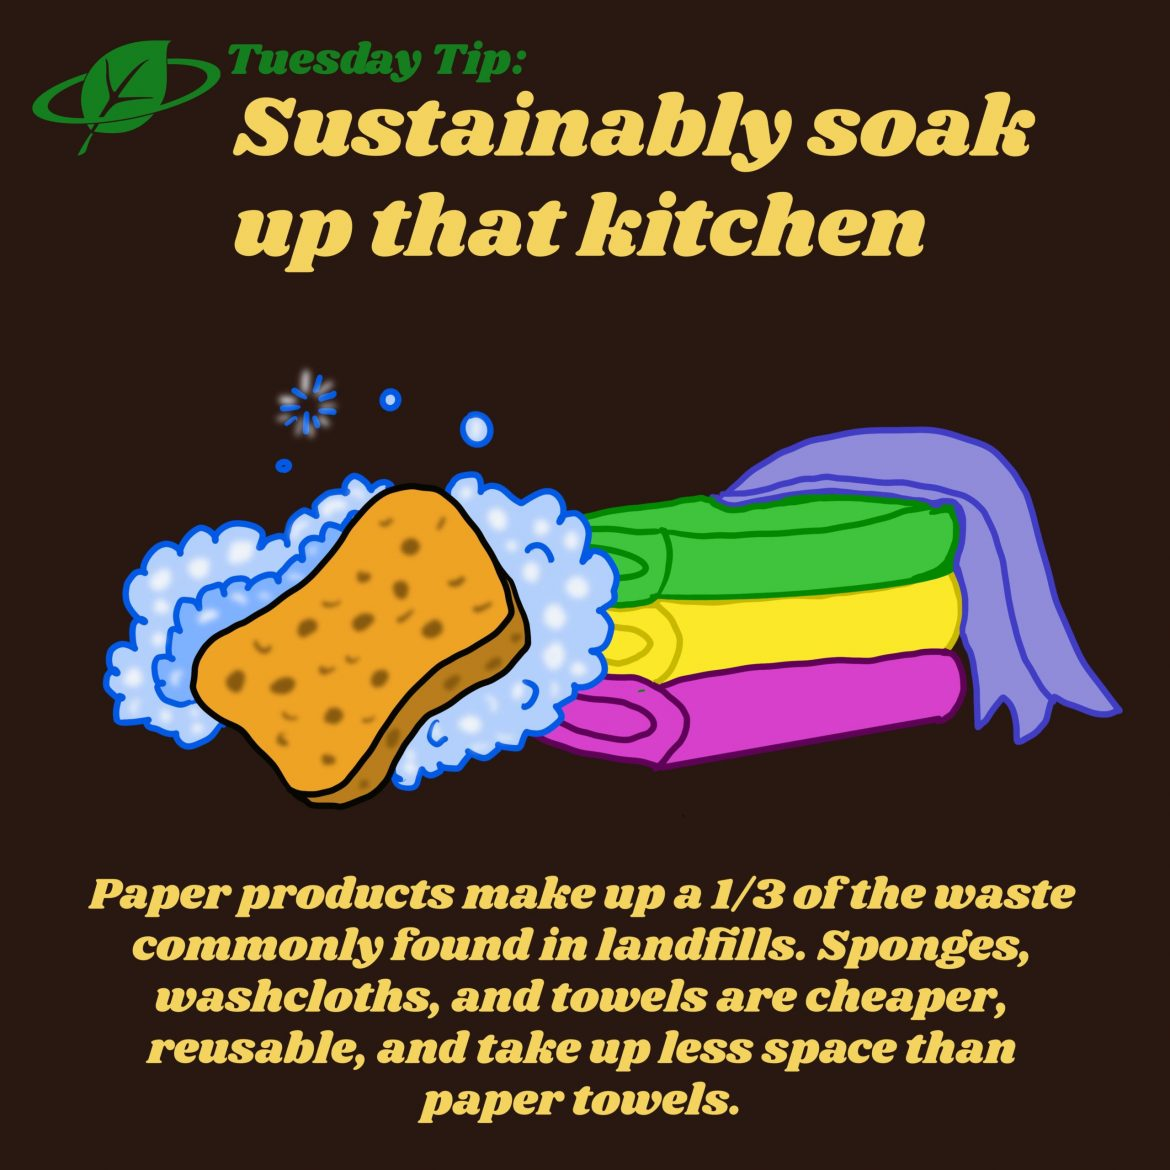 Sustainably soak up that kitchen | Tuesday Tip